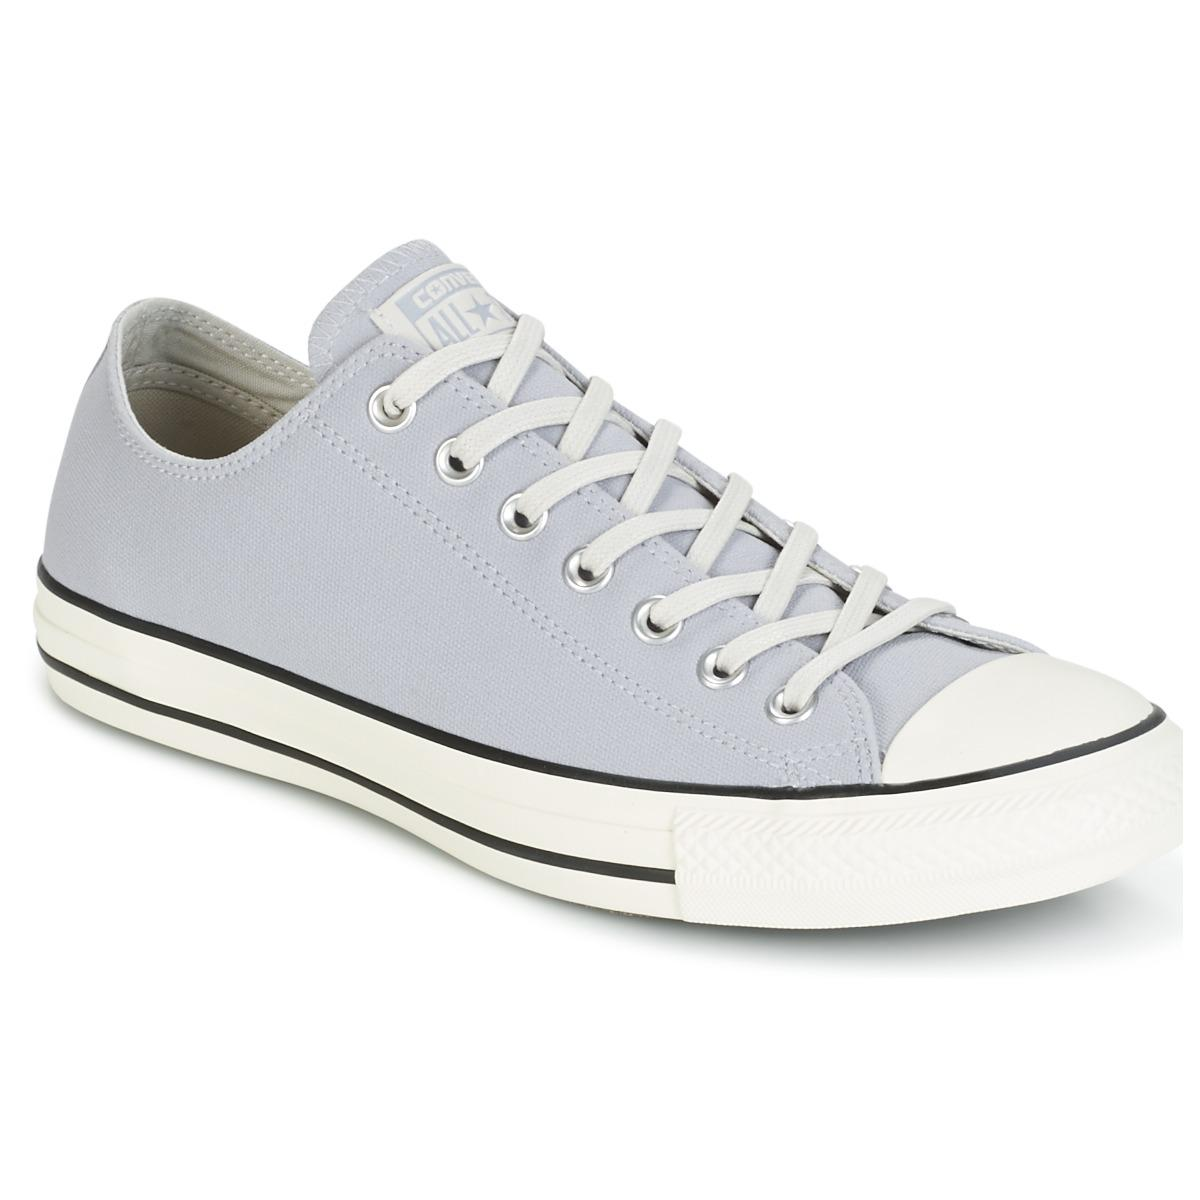 2c4778c728f6 Converse Chuck Taylor All Star Coated Leather Ox Wolf Grey black ...